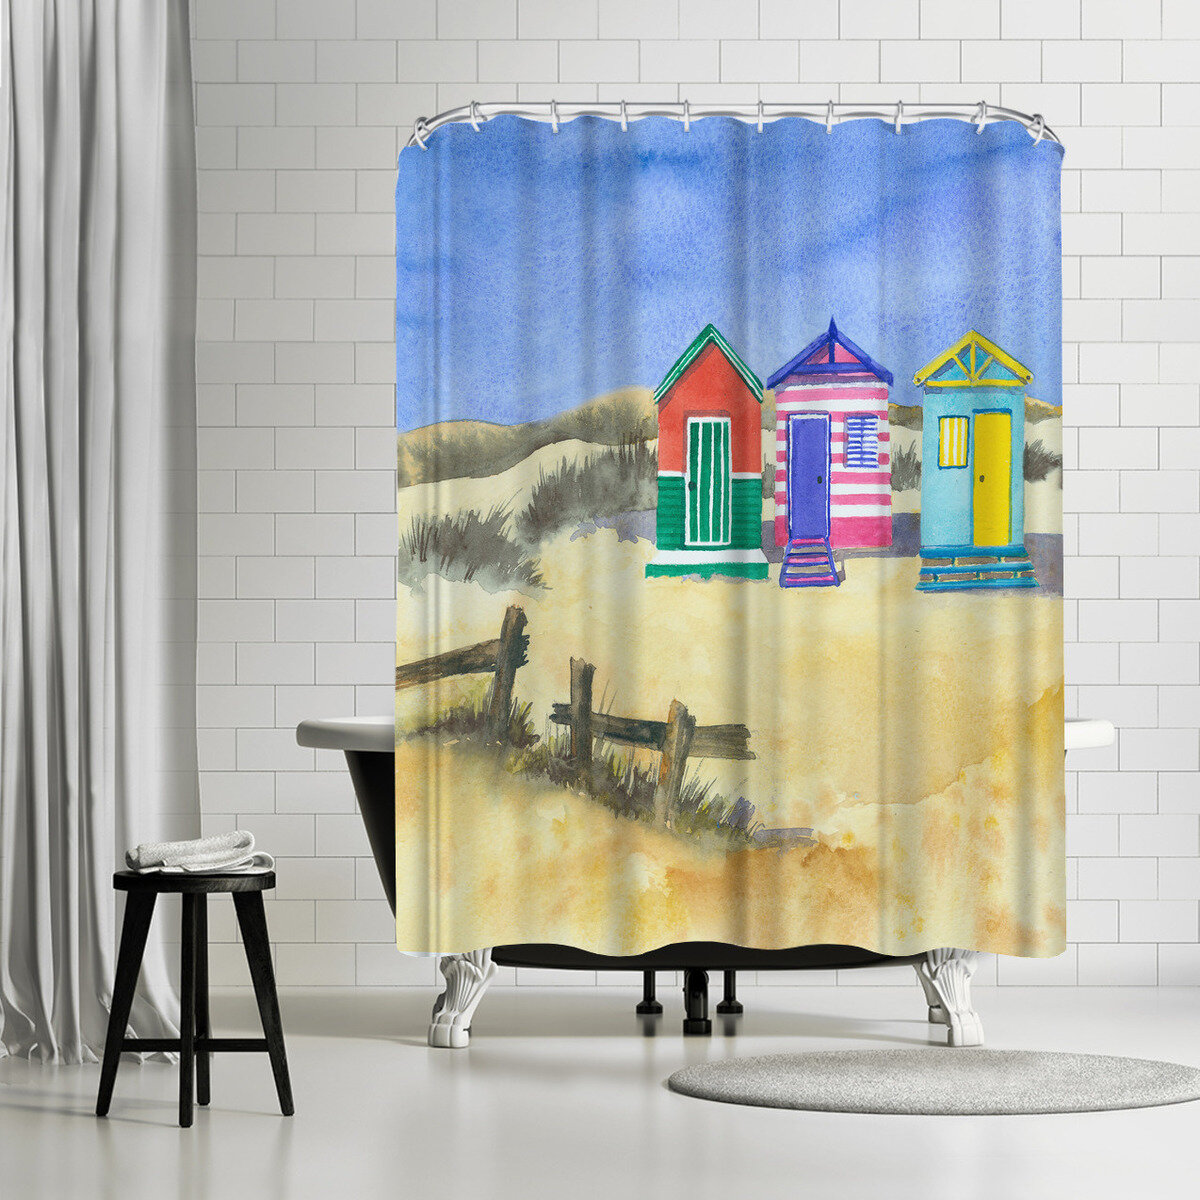 East Urban Home Rachel Mcnaughton Beach Huts Single Shower Curtain Wayfair